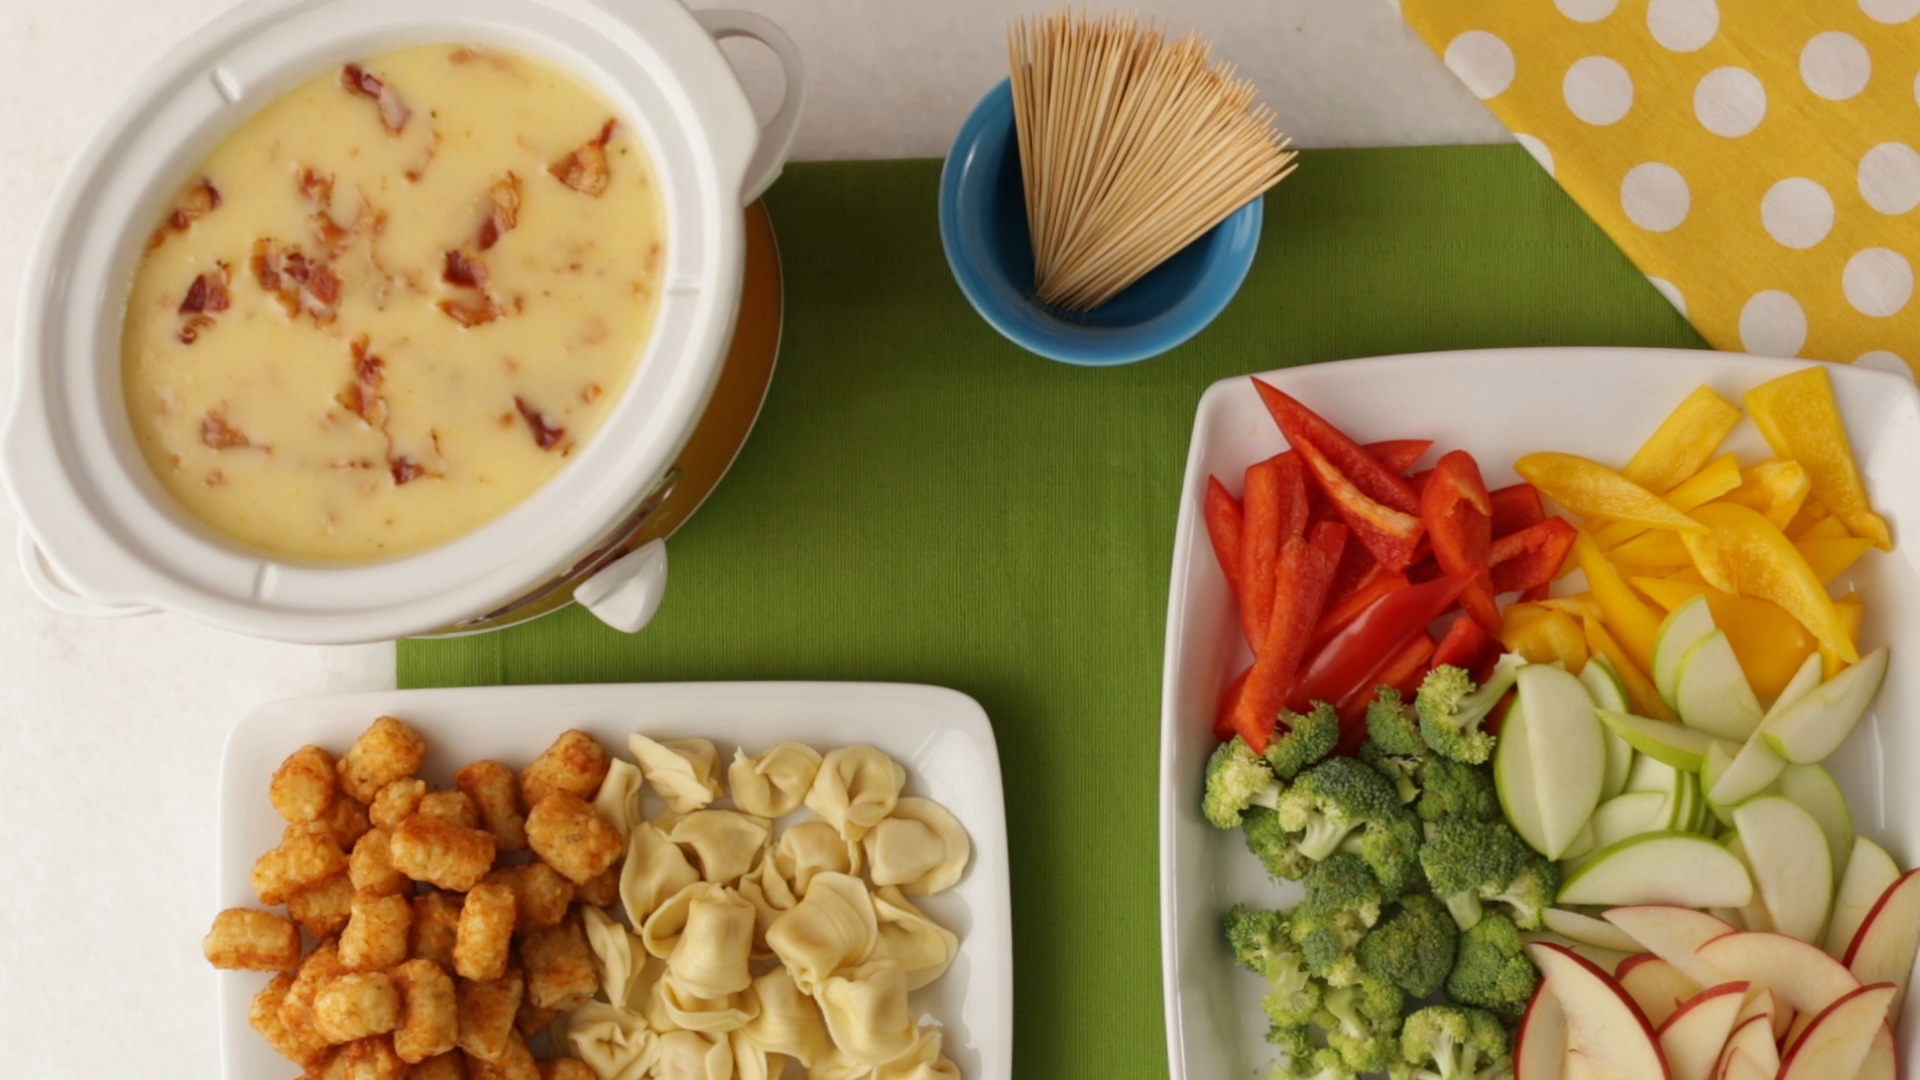 How to Make Bacon & Cheese Fondue